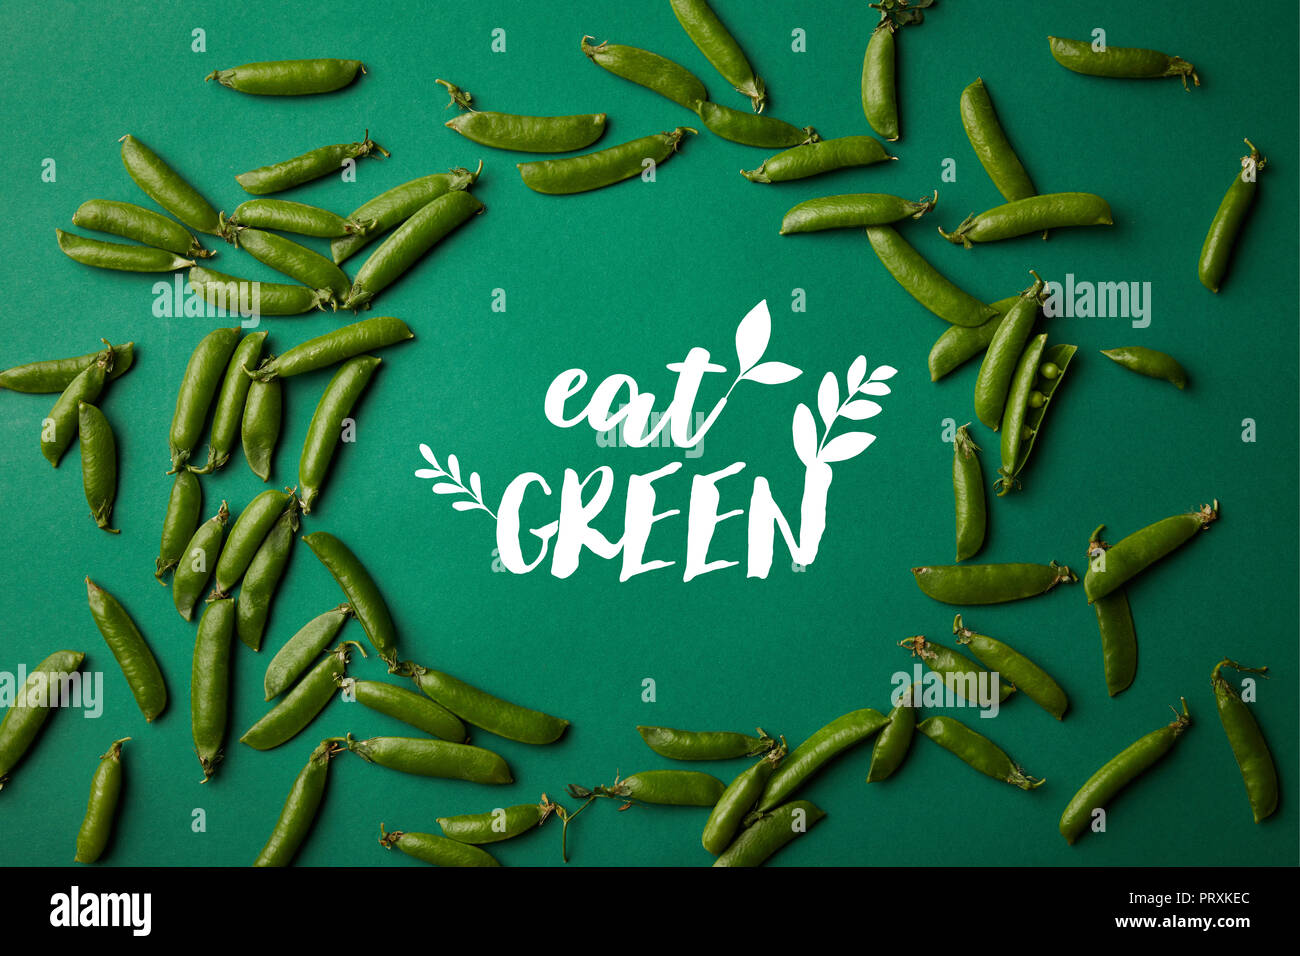 top view of round frame made of pea pods on green surface with 'eat green' lettering - Stock Image